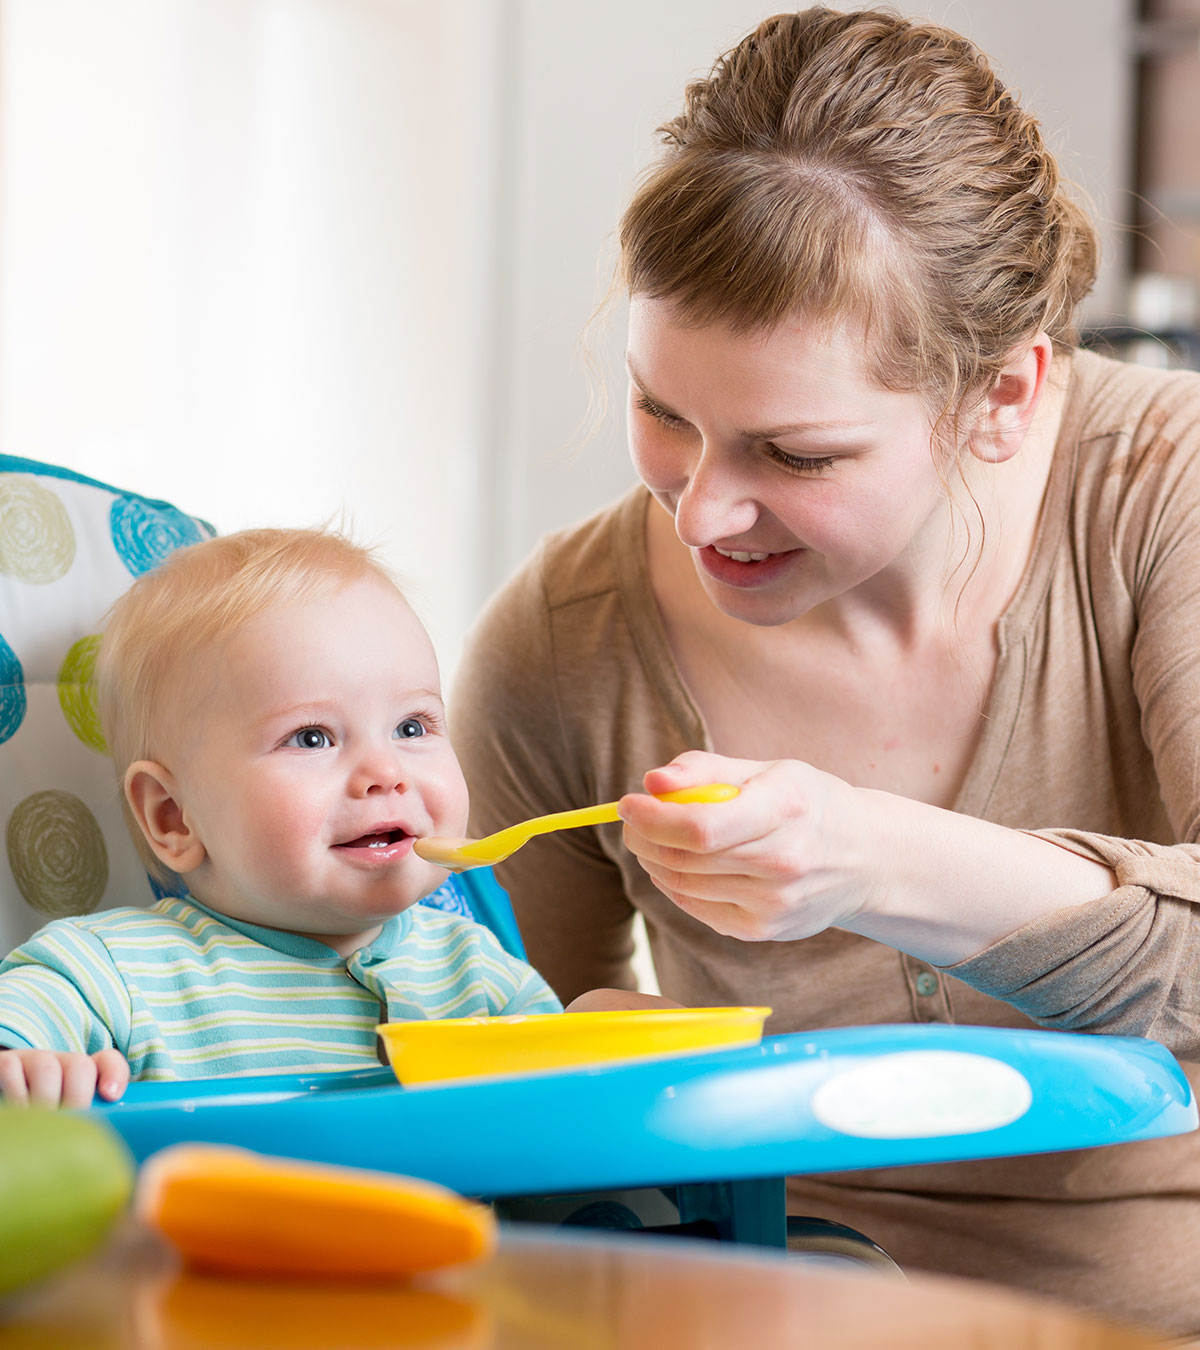 Cerelac Baby Food: Stages, When To Start, And How To Feed